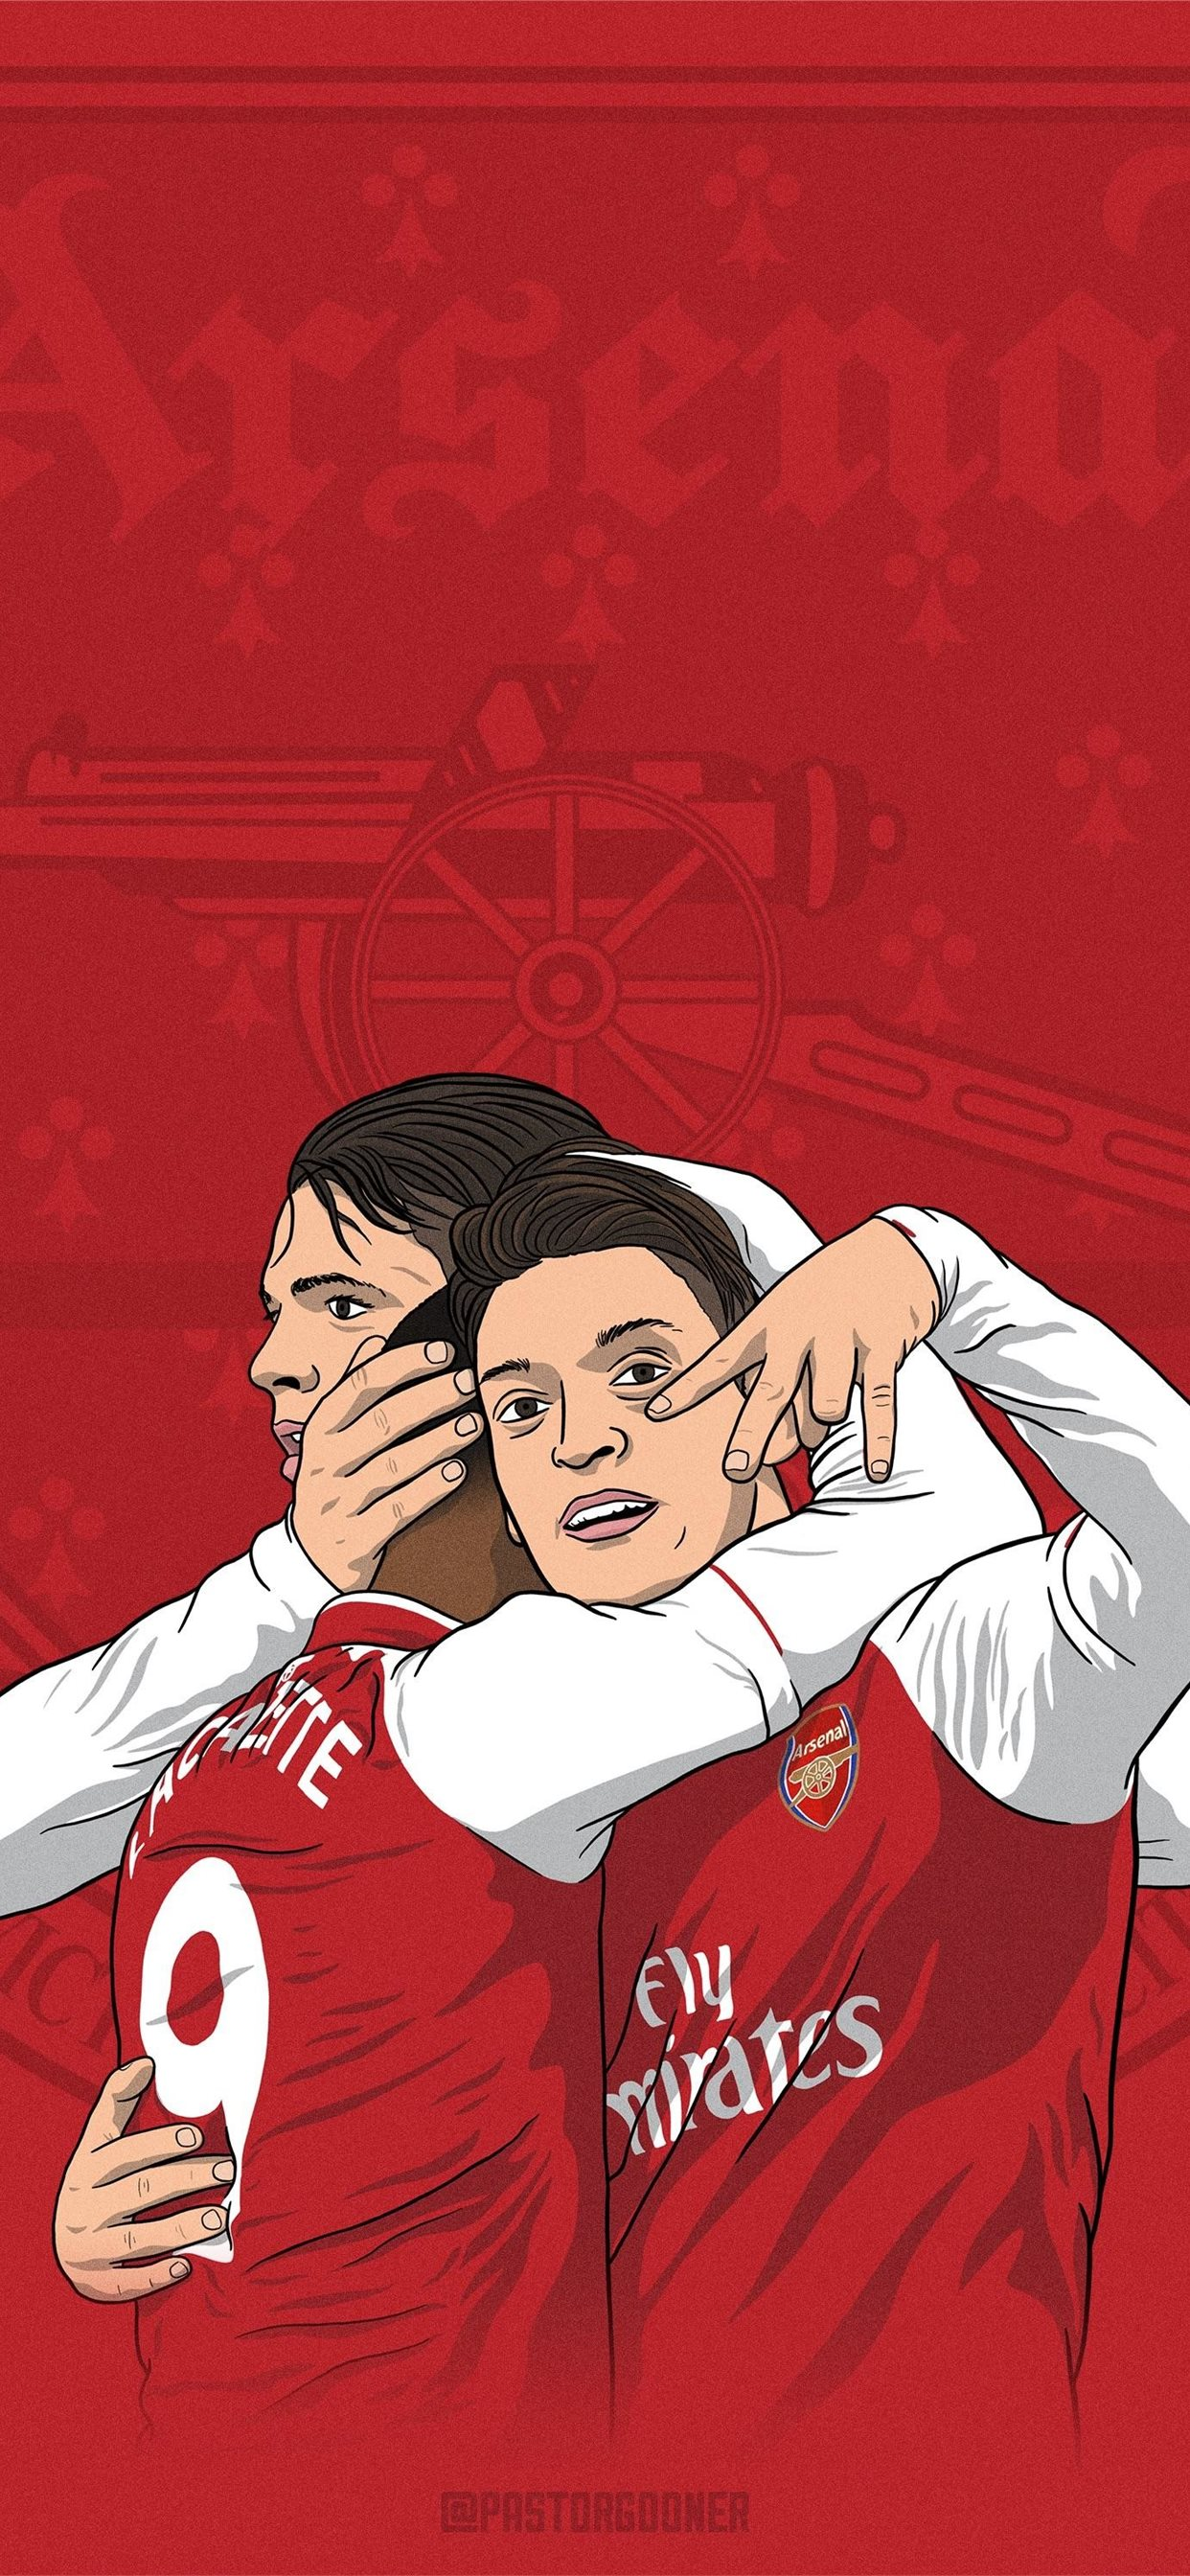 arsenal 2020 cave iphone 11 wallpapers